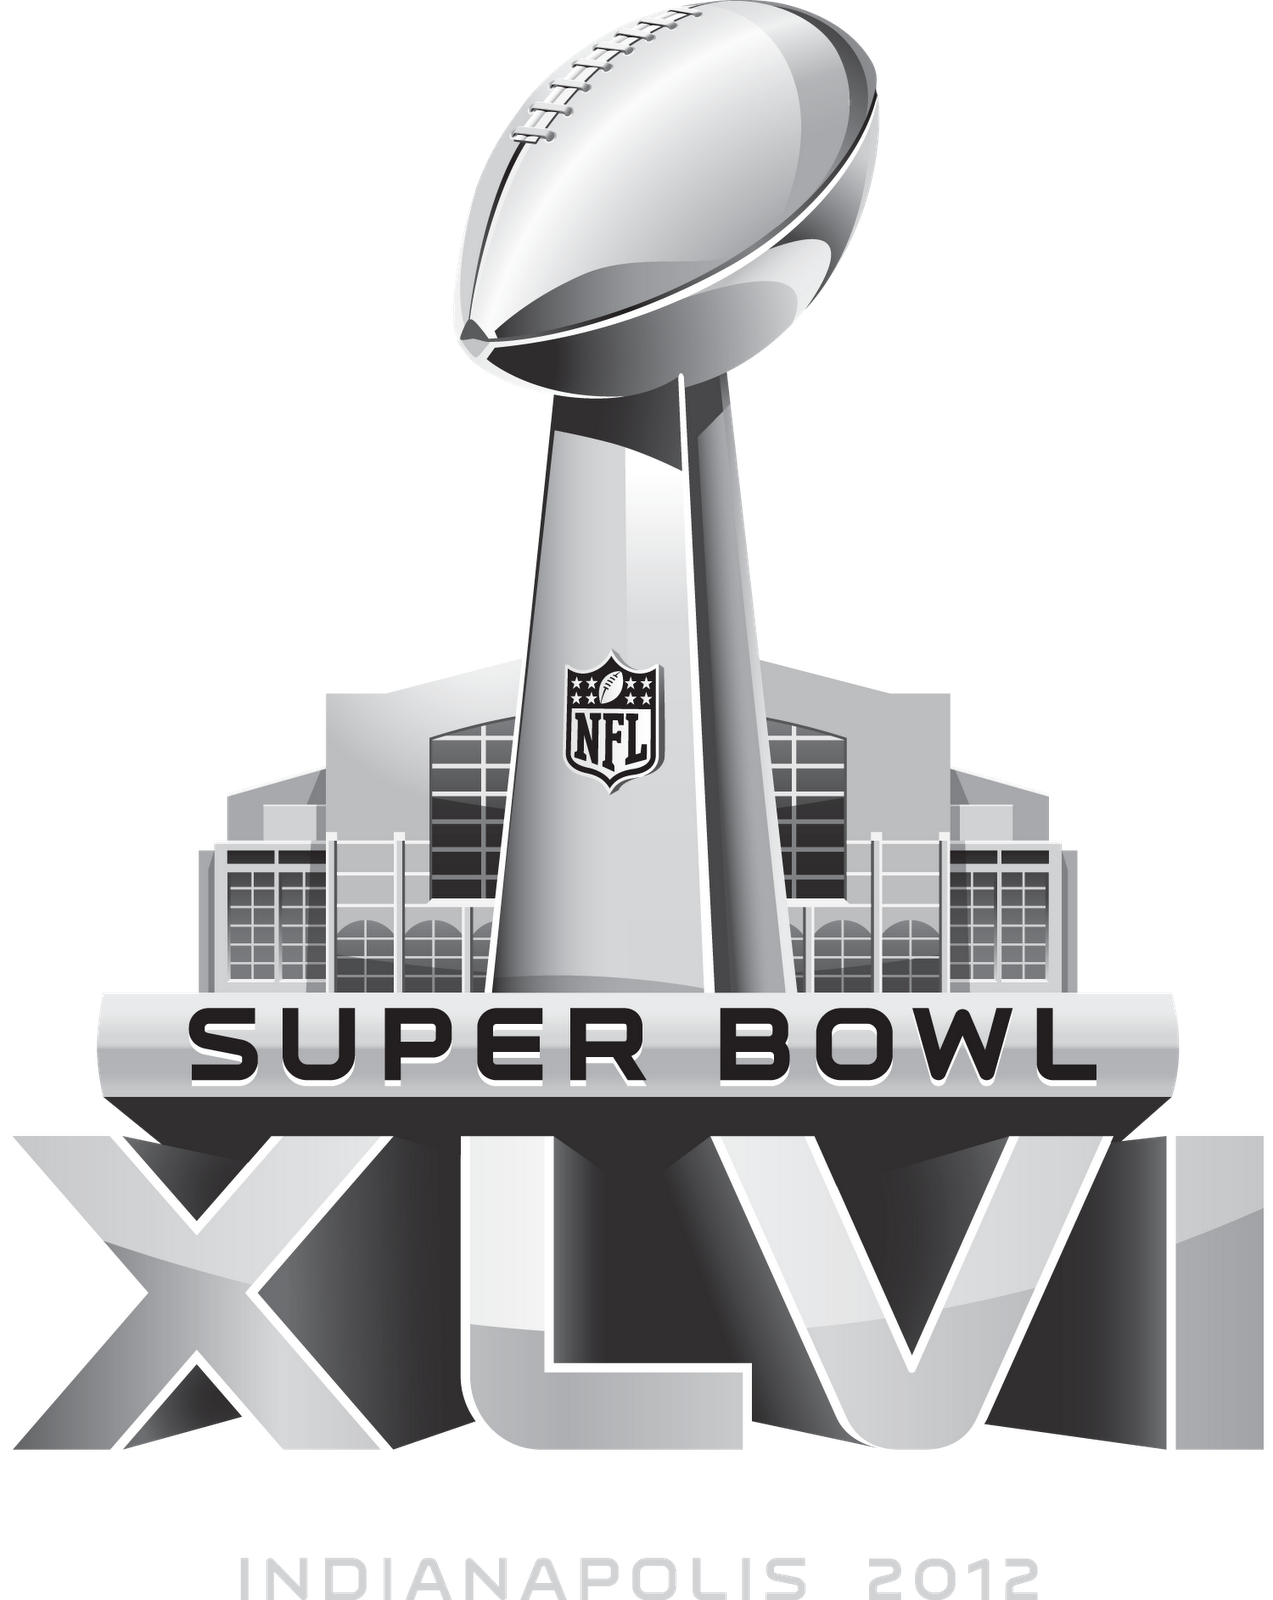 Superbowl 2015 symbols super bowl blog publish with glogster superbowl 2015 symbols super bowl blog publish with glogster biocorpaavc